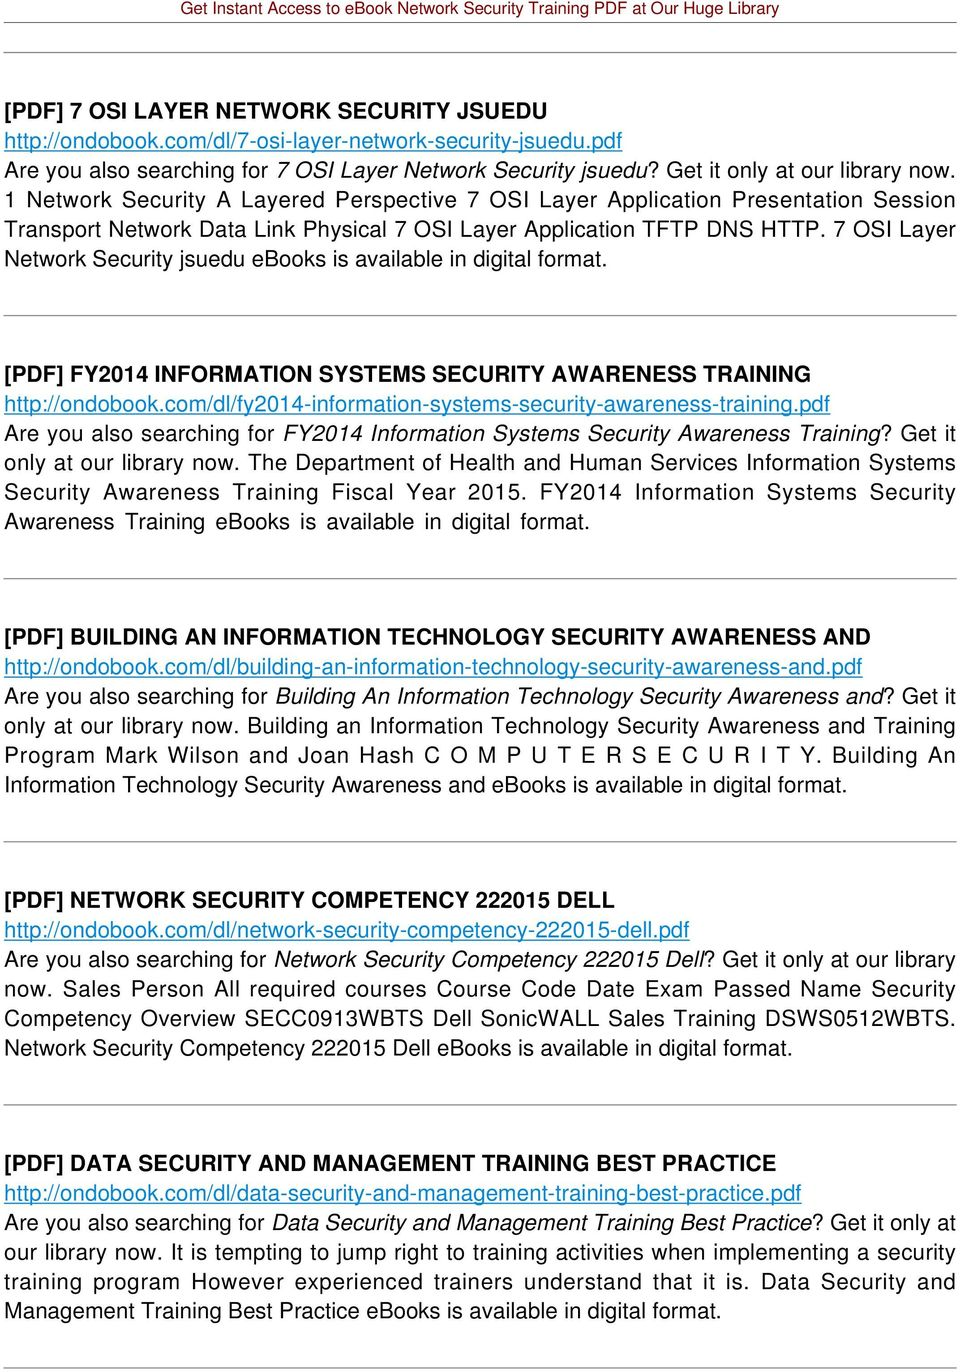 7 OSI Layer Network Security jsuedu ebooks is [PDF] FY2014 INFORMATION SYSTEMS SECURITY AWARENESS TRAINING http://ondobook.com/dl/fy2014-information-systems-security-awareness-training.